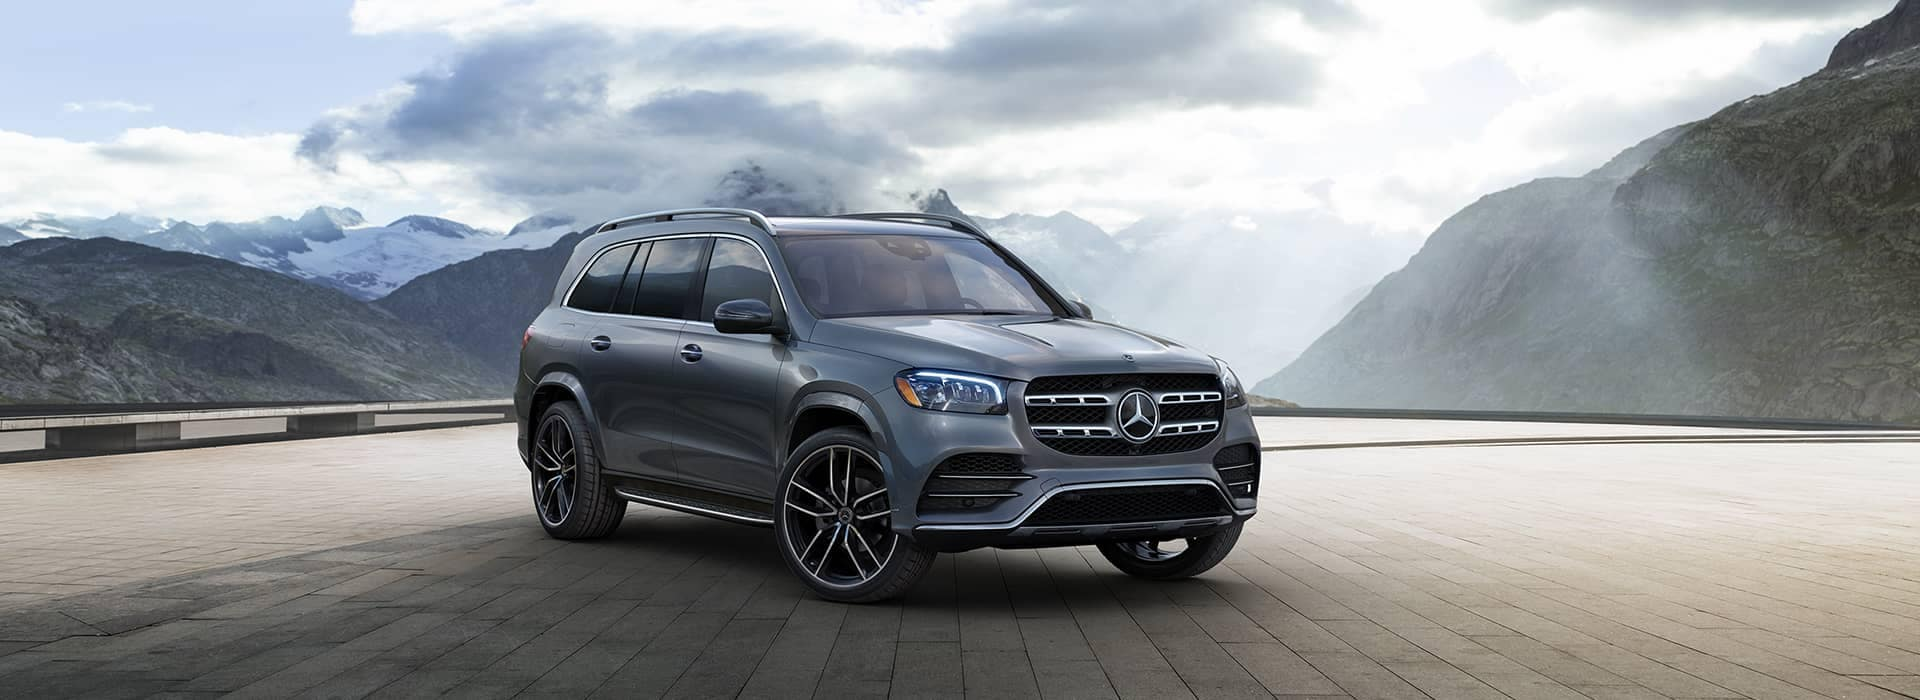 2020 MB GLS In The Mountains